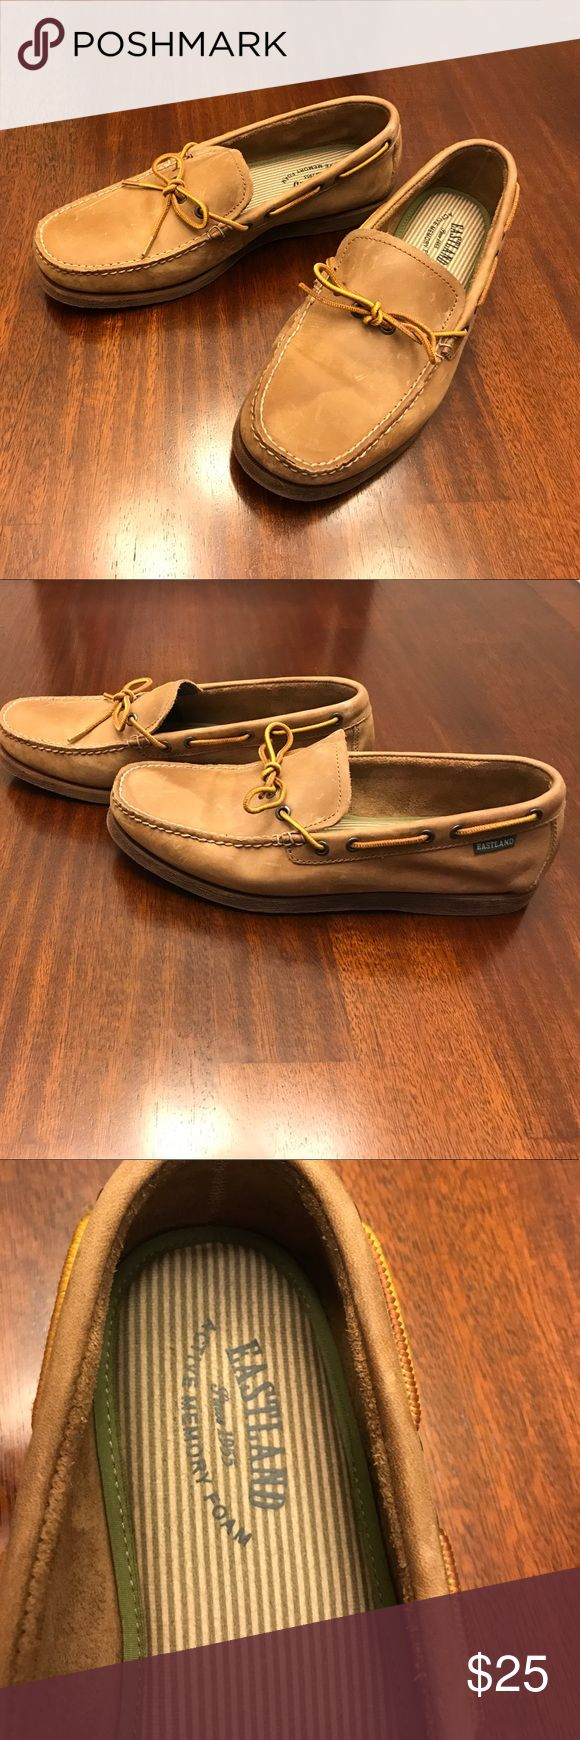 Men's Eastland Loafers Camel colored men's loafers. My husband only wore them once. Excellent Condition! Eastland Shoes Loafers & Slip-Ons